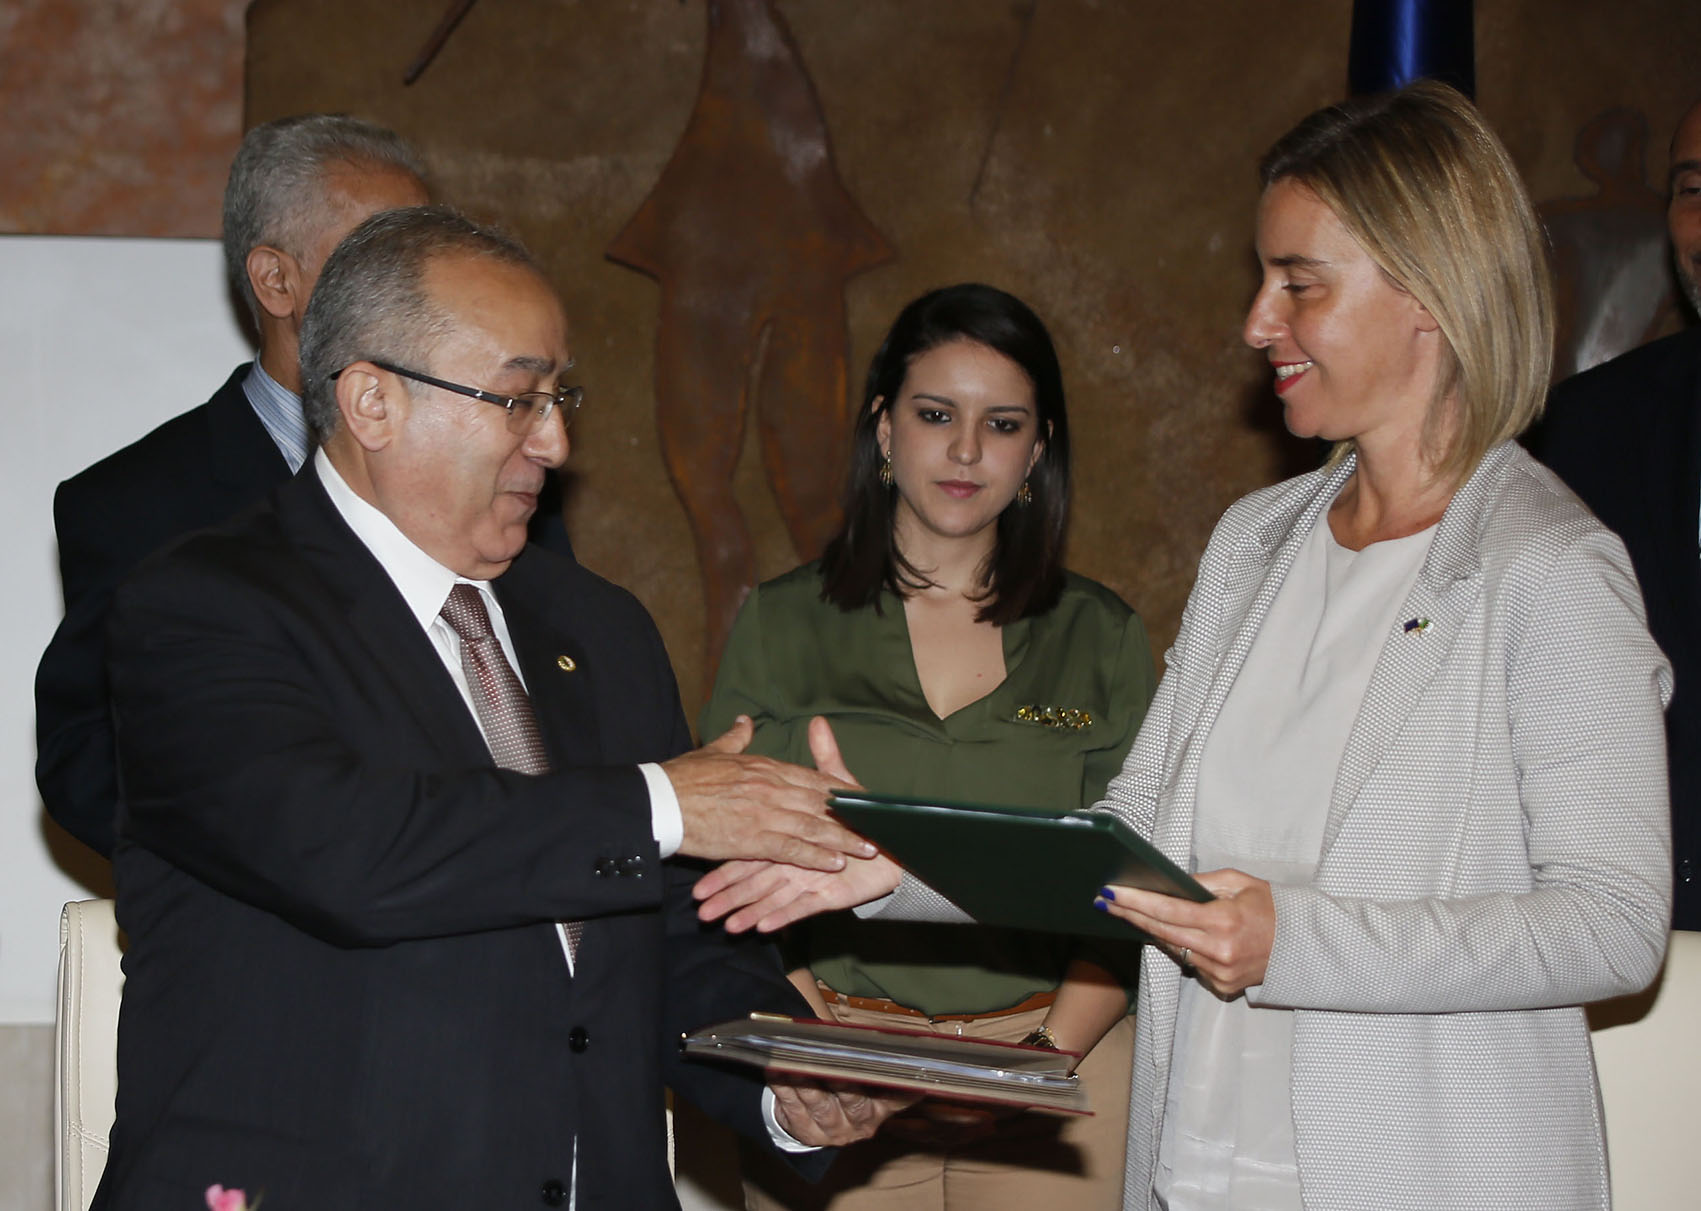 Ramtane Lamamra et Federica Mogherini. New Press